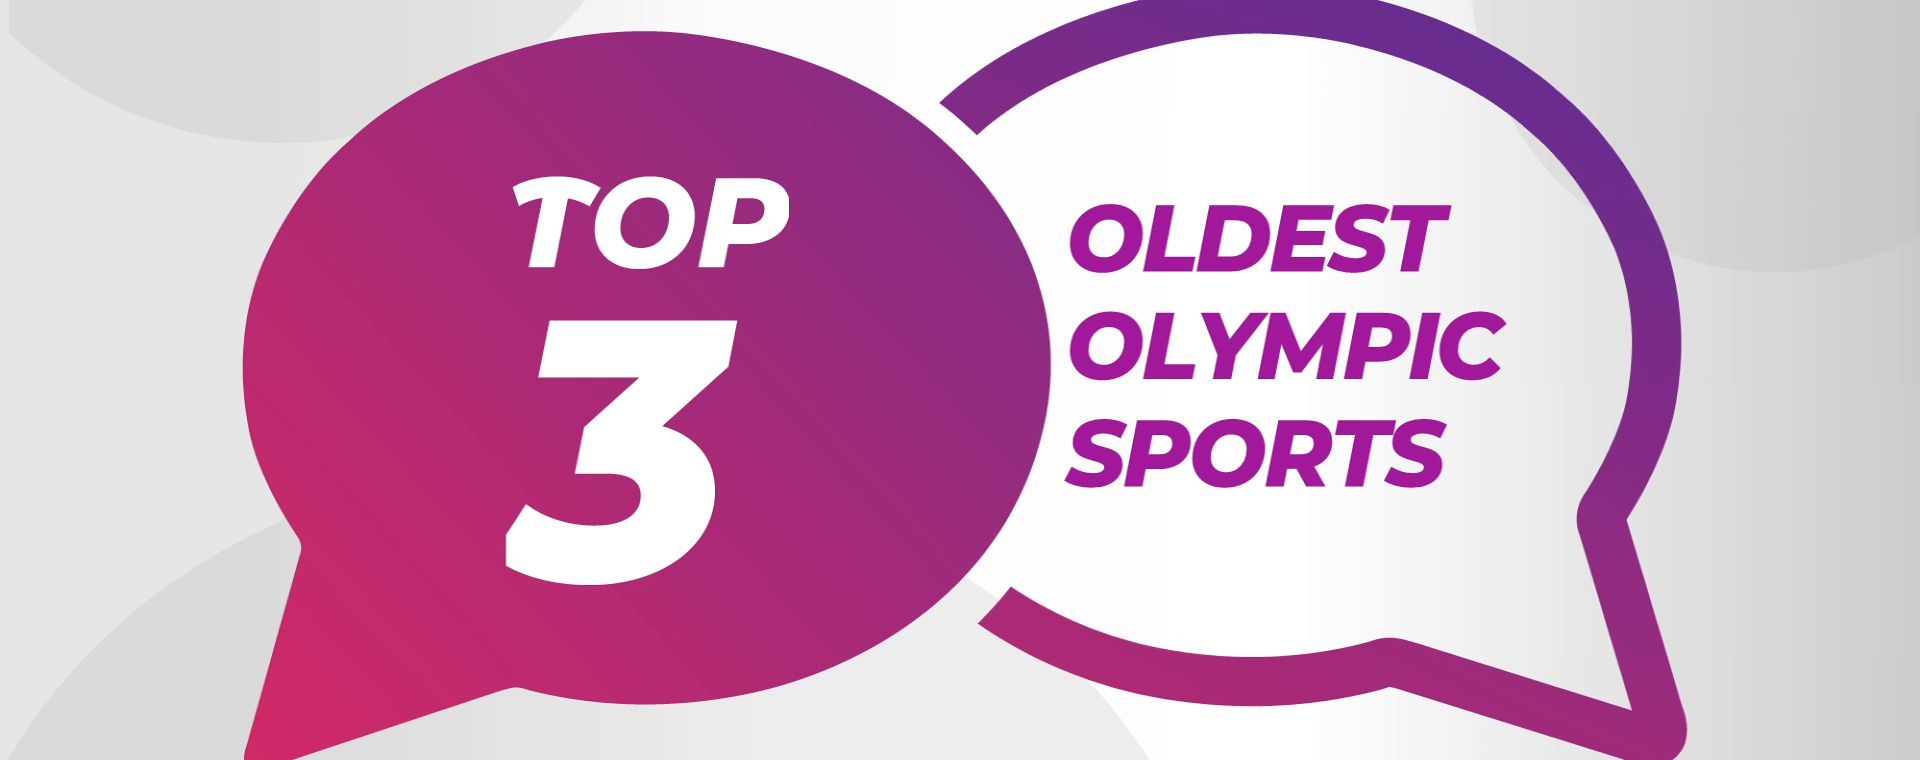 OLDEST OLYMPIC SPORTS